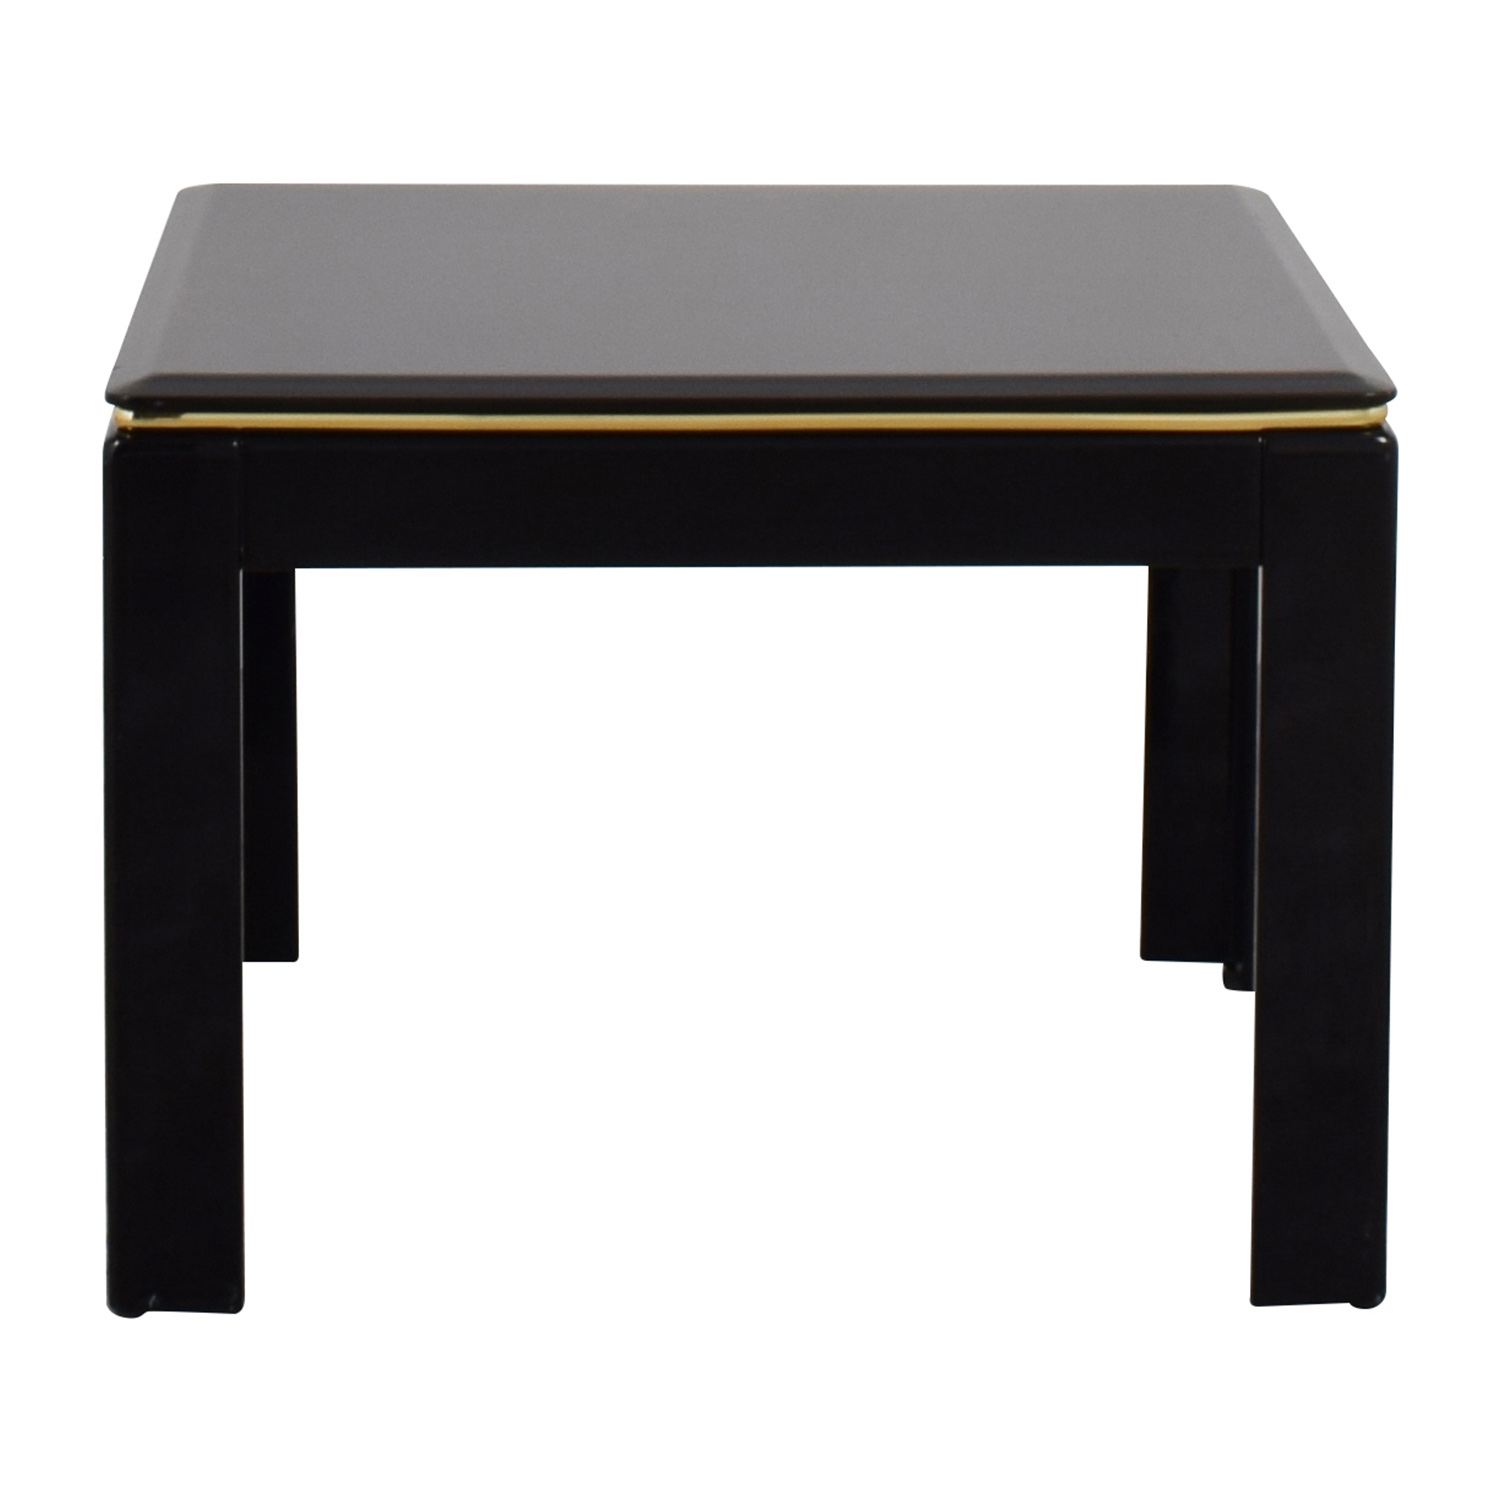 90 Off Black Lacquer End Table Tables